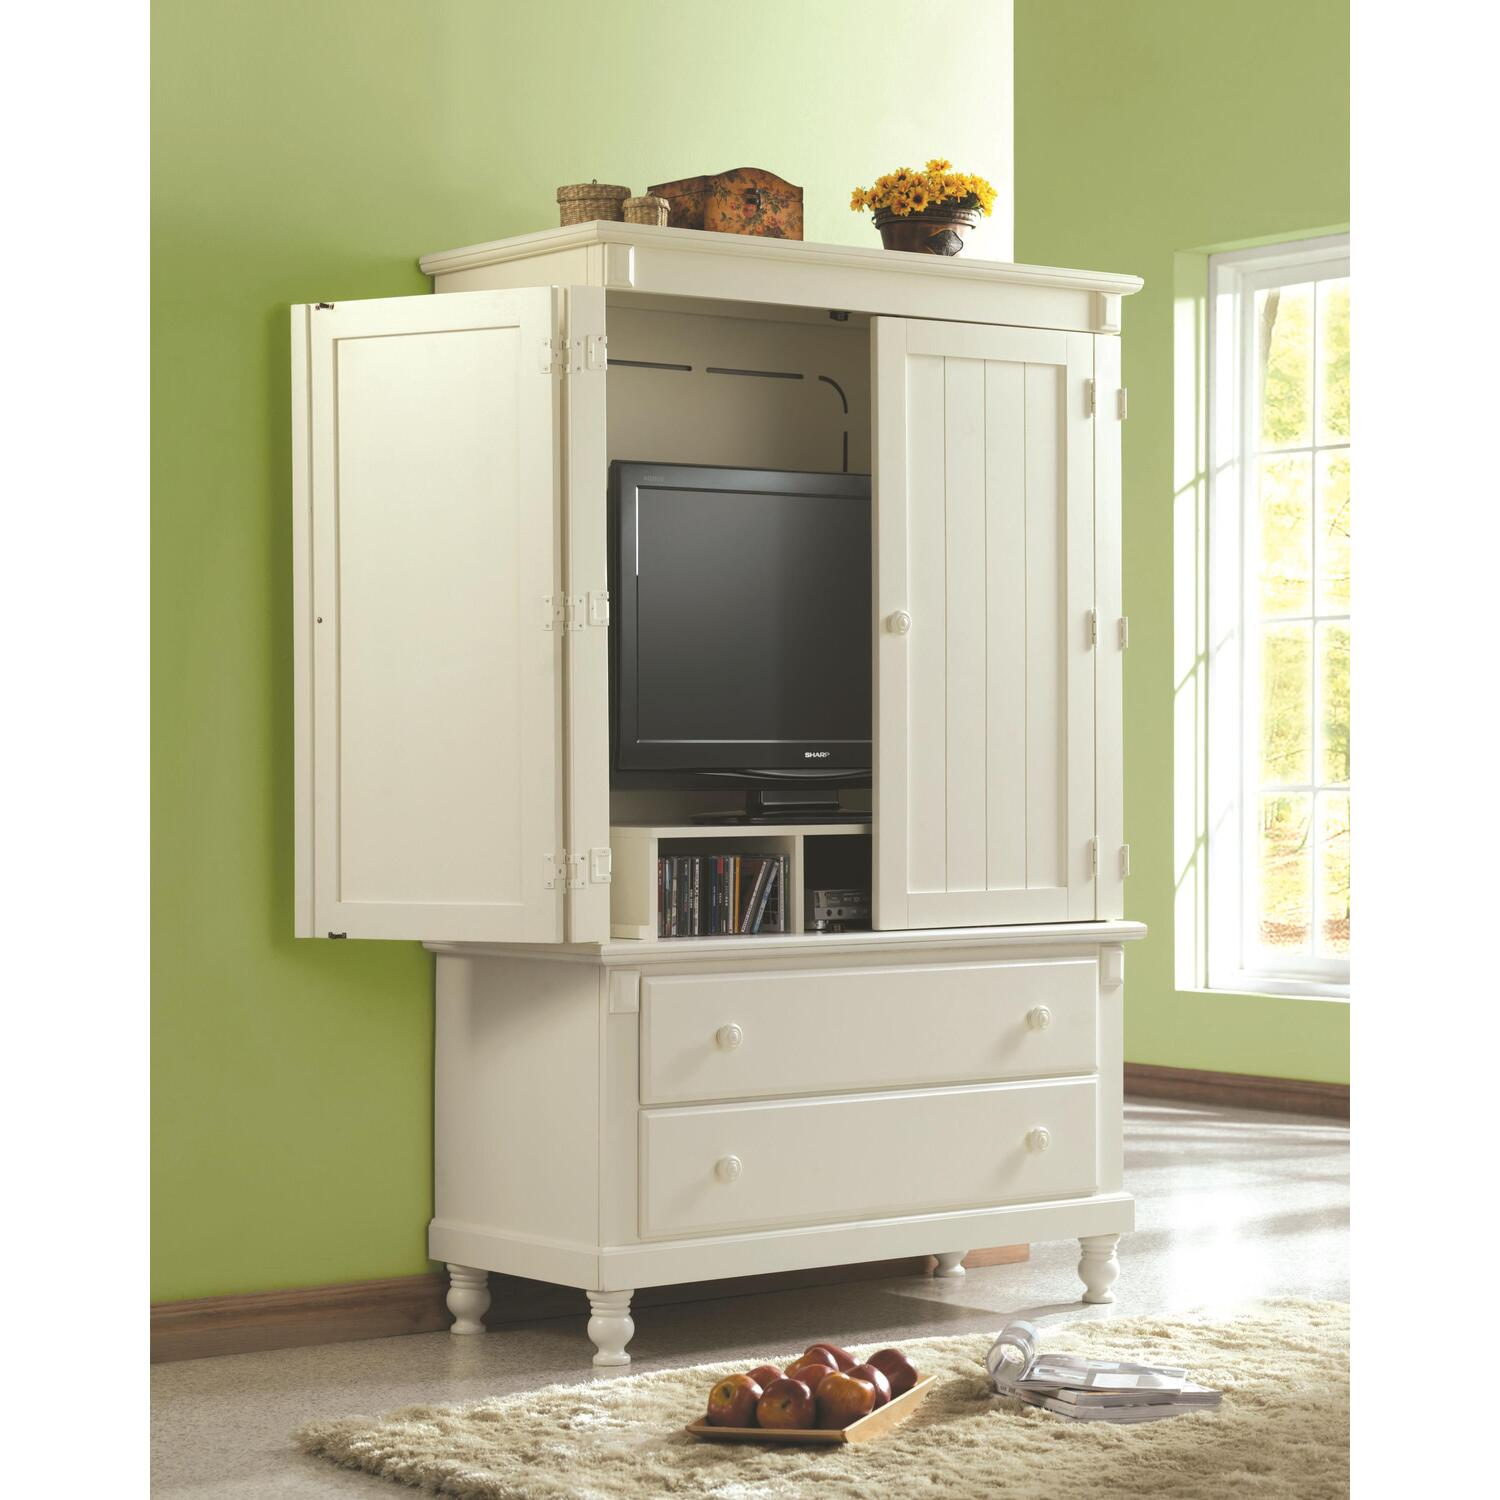 Homelegance Pottery TV Armoire By OJ Commerce $1,075.99